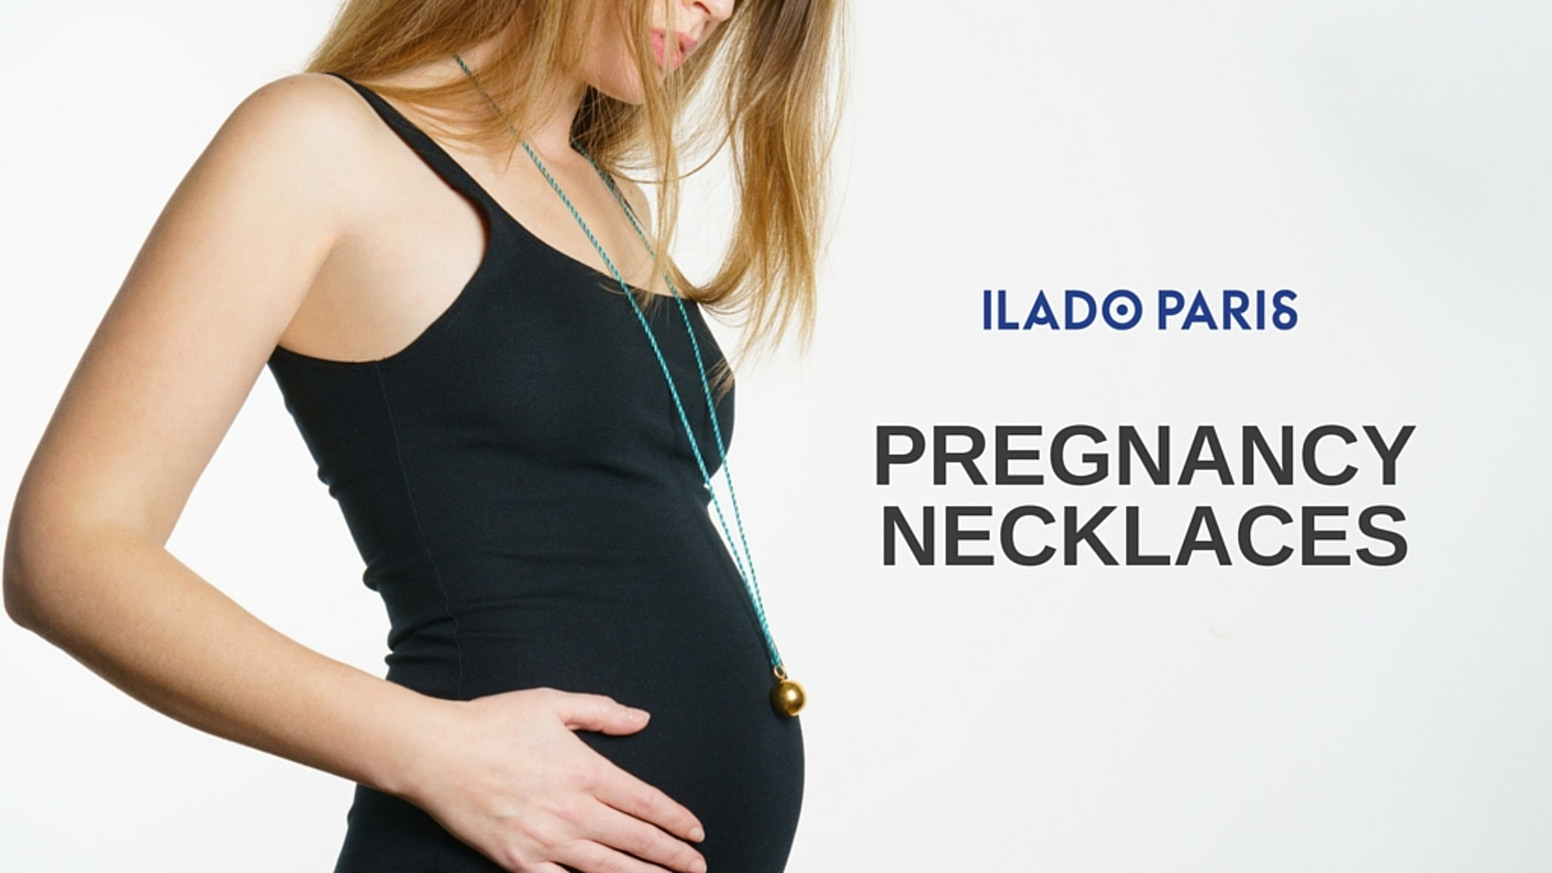 Get a unique chiming necklace to bond with your unborn baby and comfort your little one after birth.